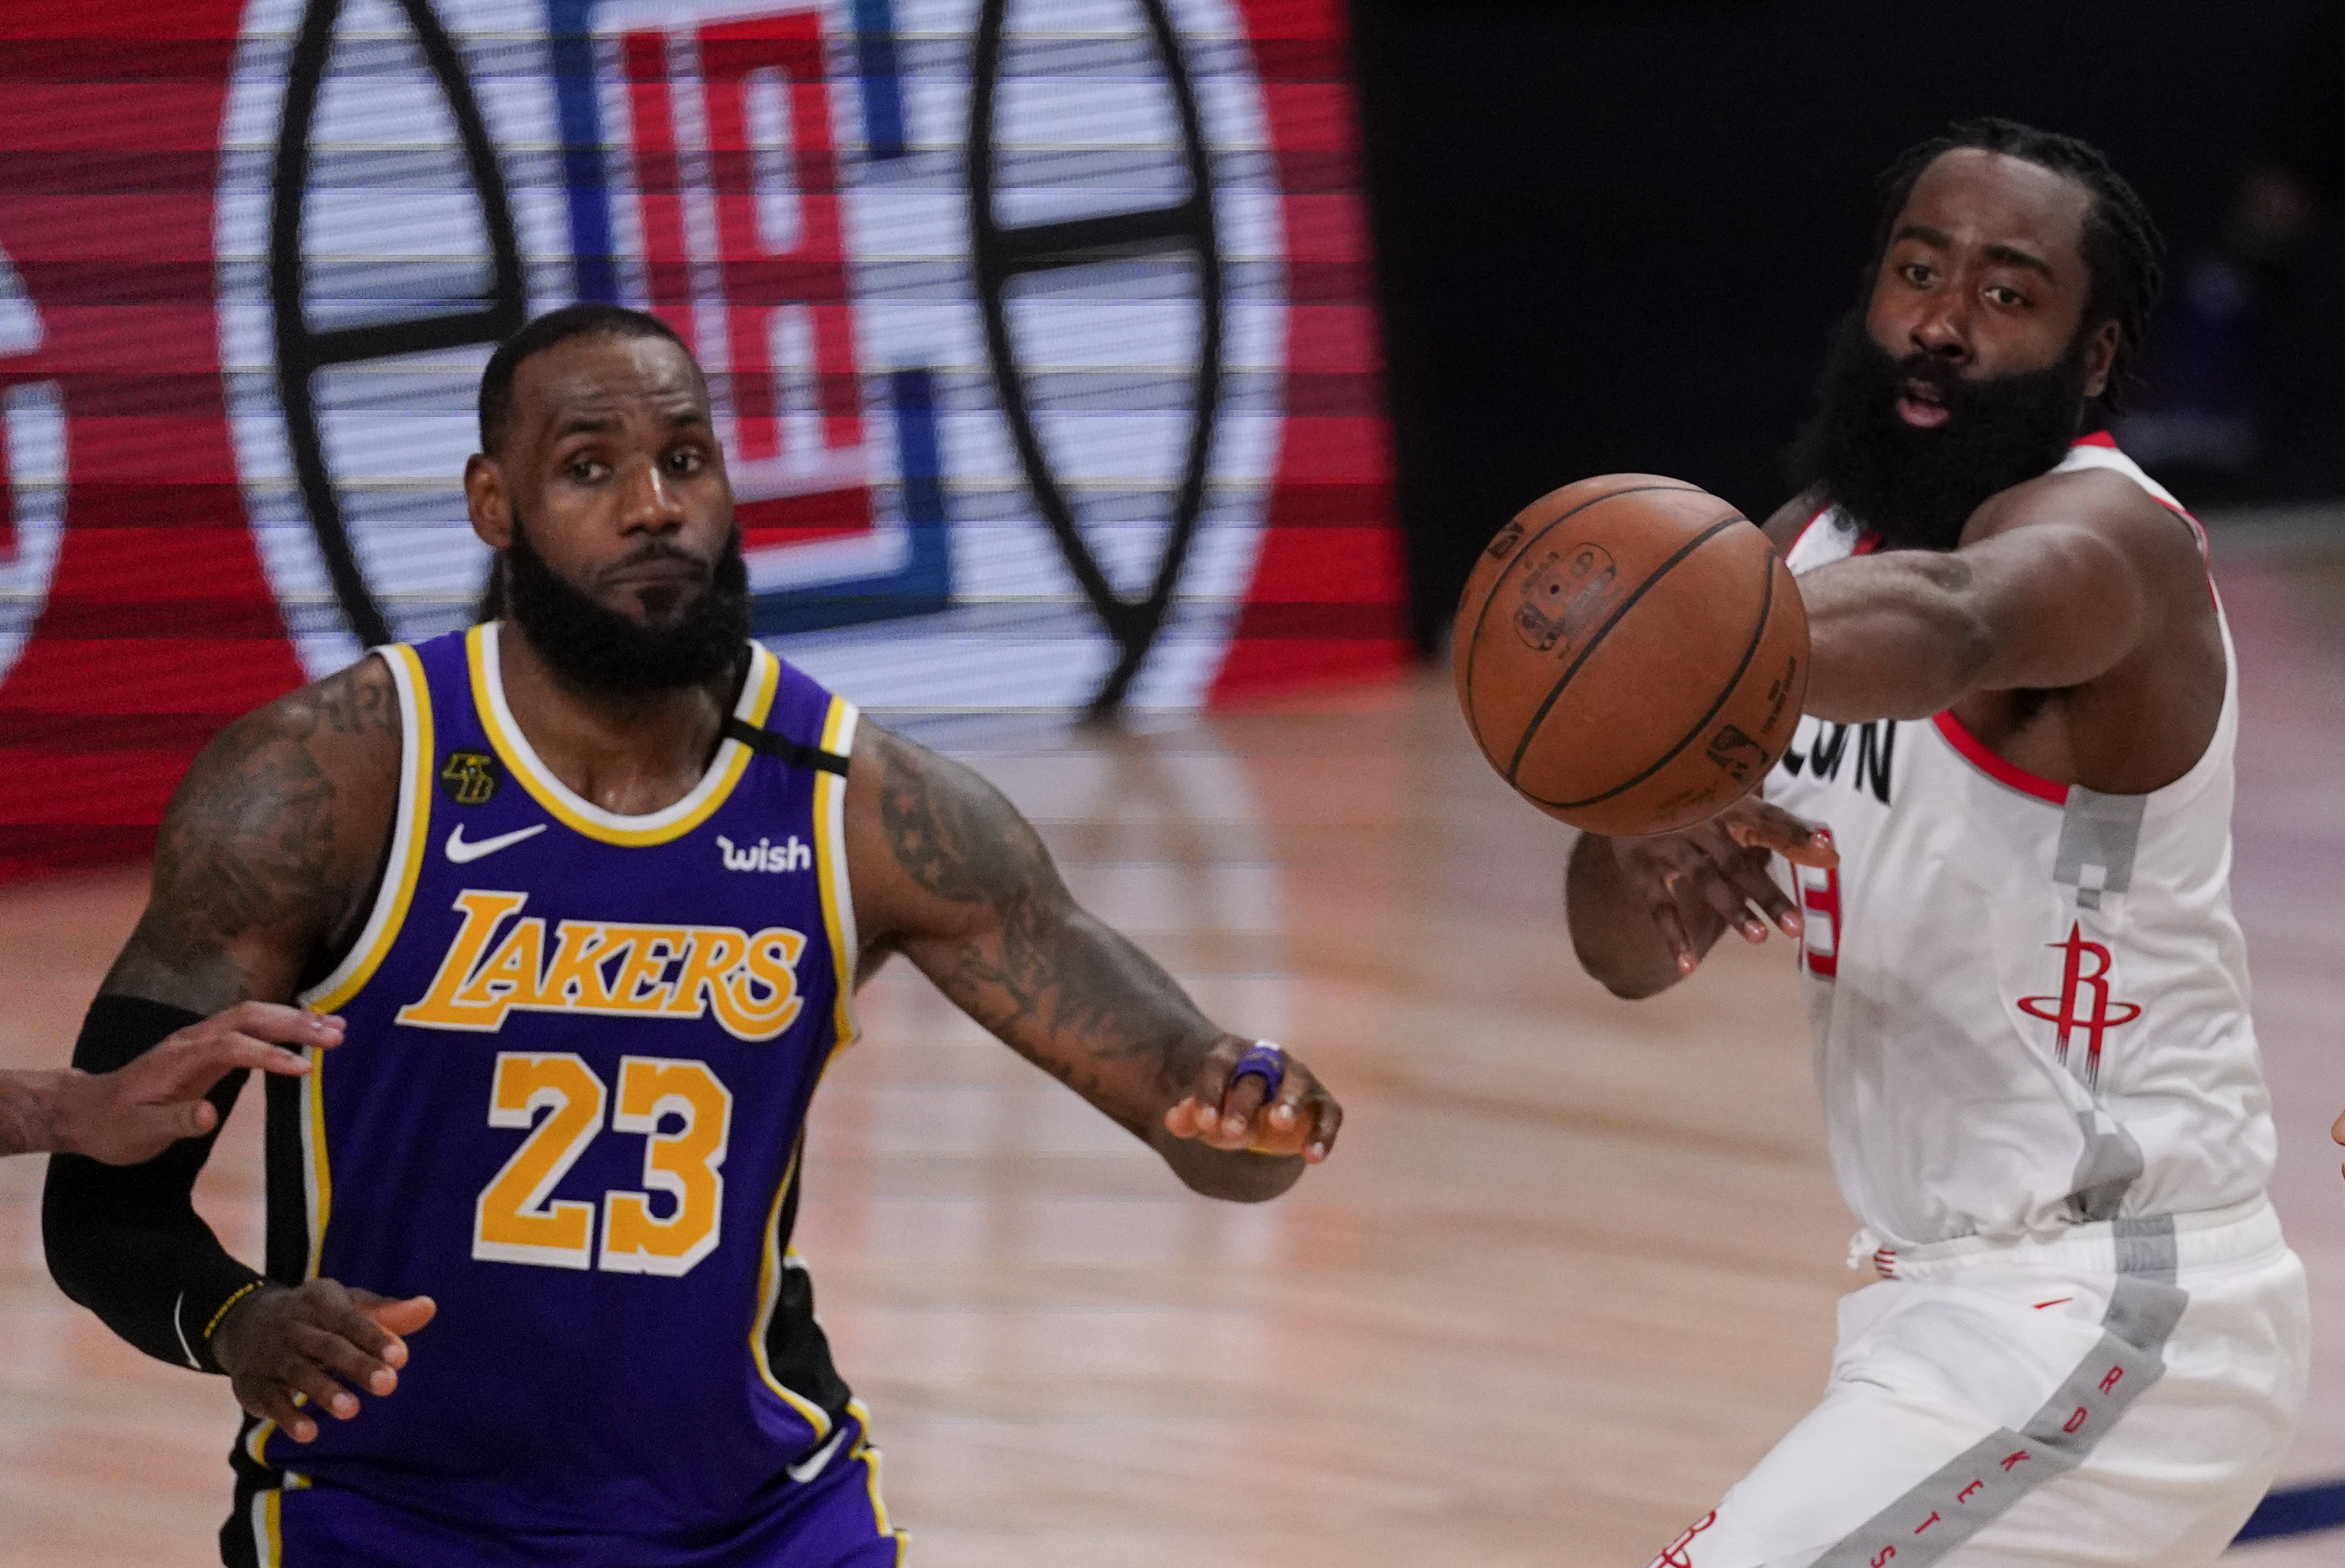 Houston Rockets Vs Los Angeles Lakers Game 2 Free Live Stream 9 6 20 Watch Lebron James Vs James Harden In Nba Playoffs 2nd Round Online Time Tv Channel Nj Com